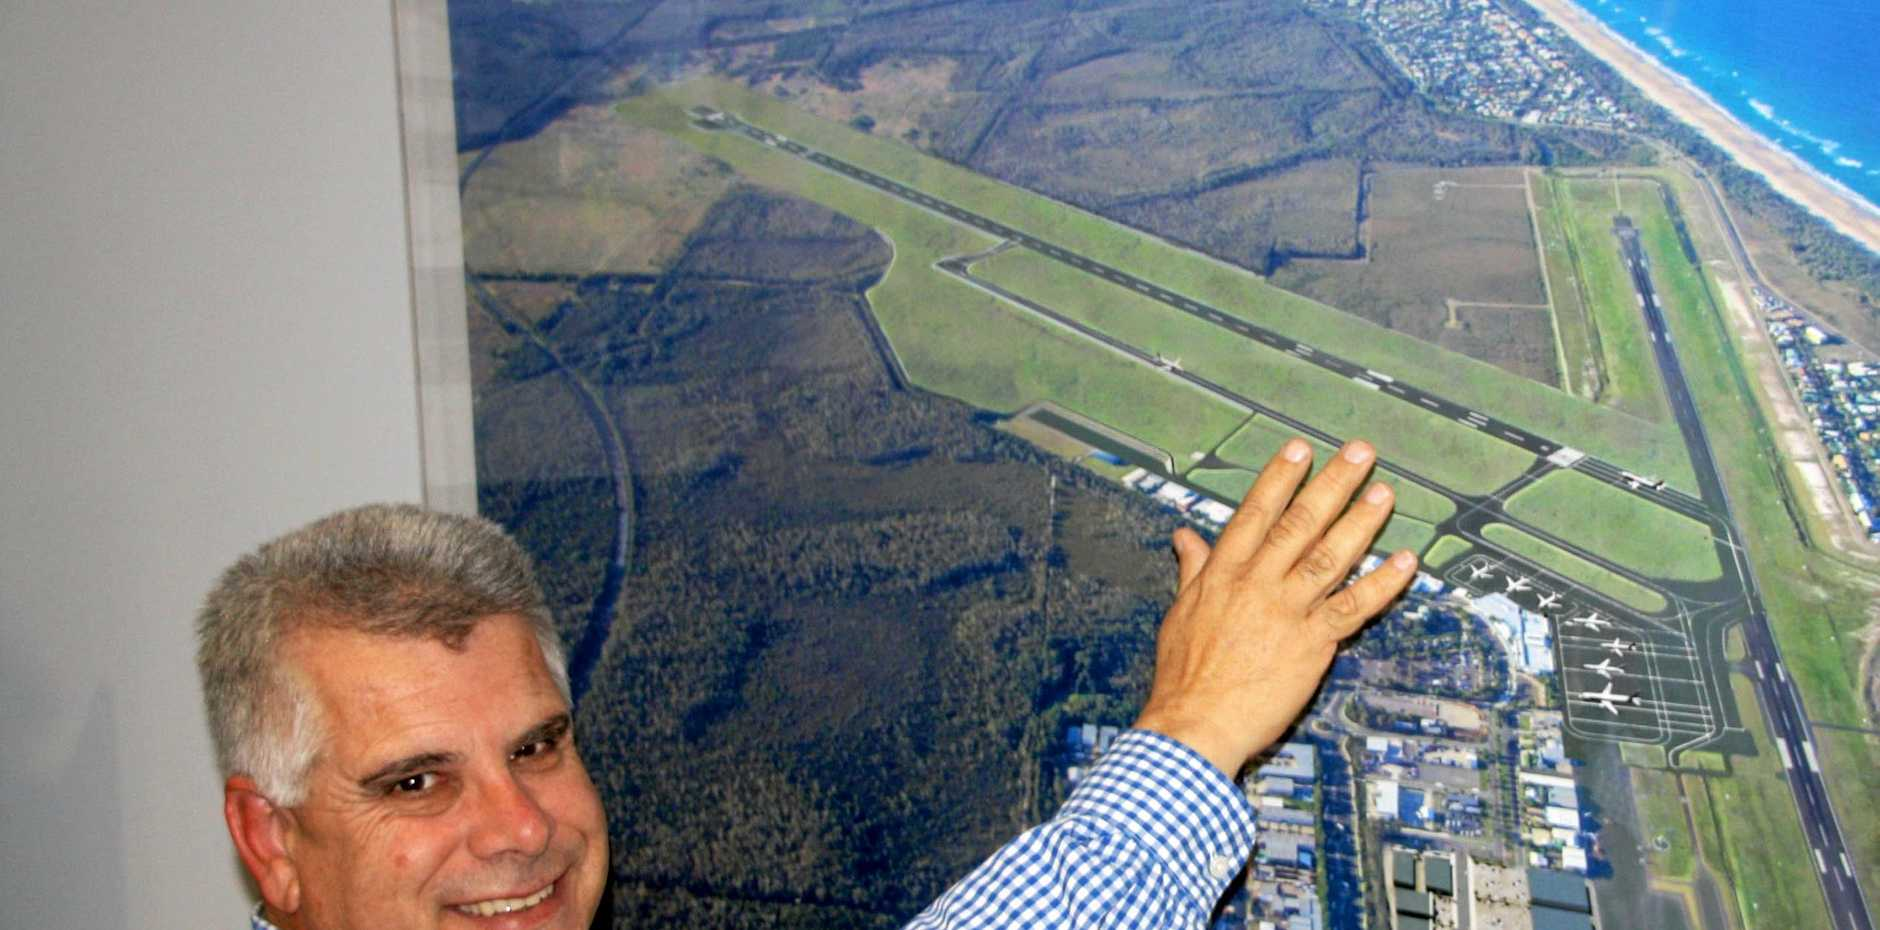 Sunshine Coast Airport CEO Peter Pallott with an artist's impression of the airport expansion which clearly shows two runways.